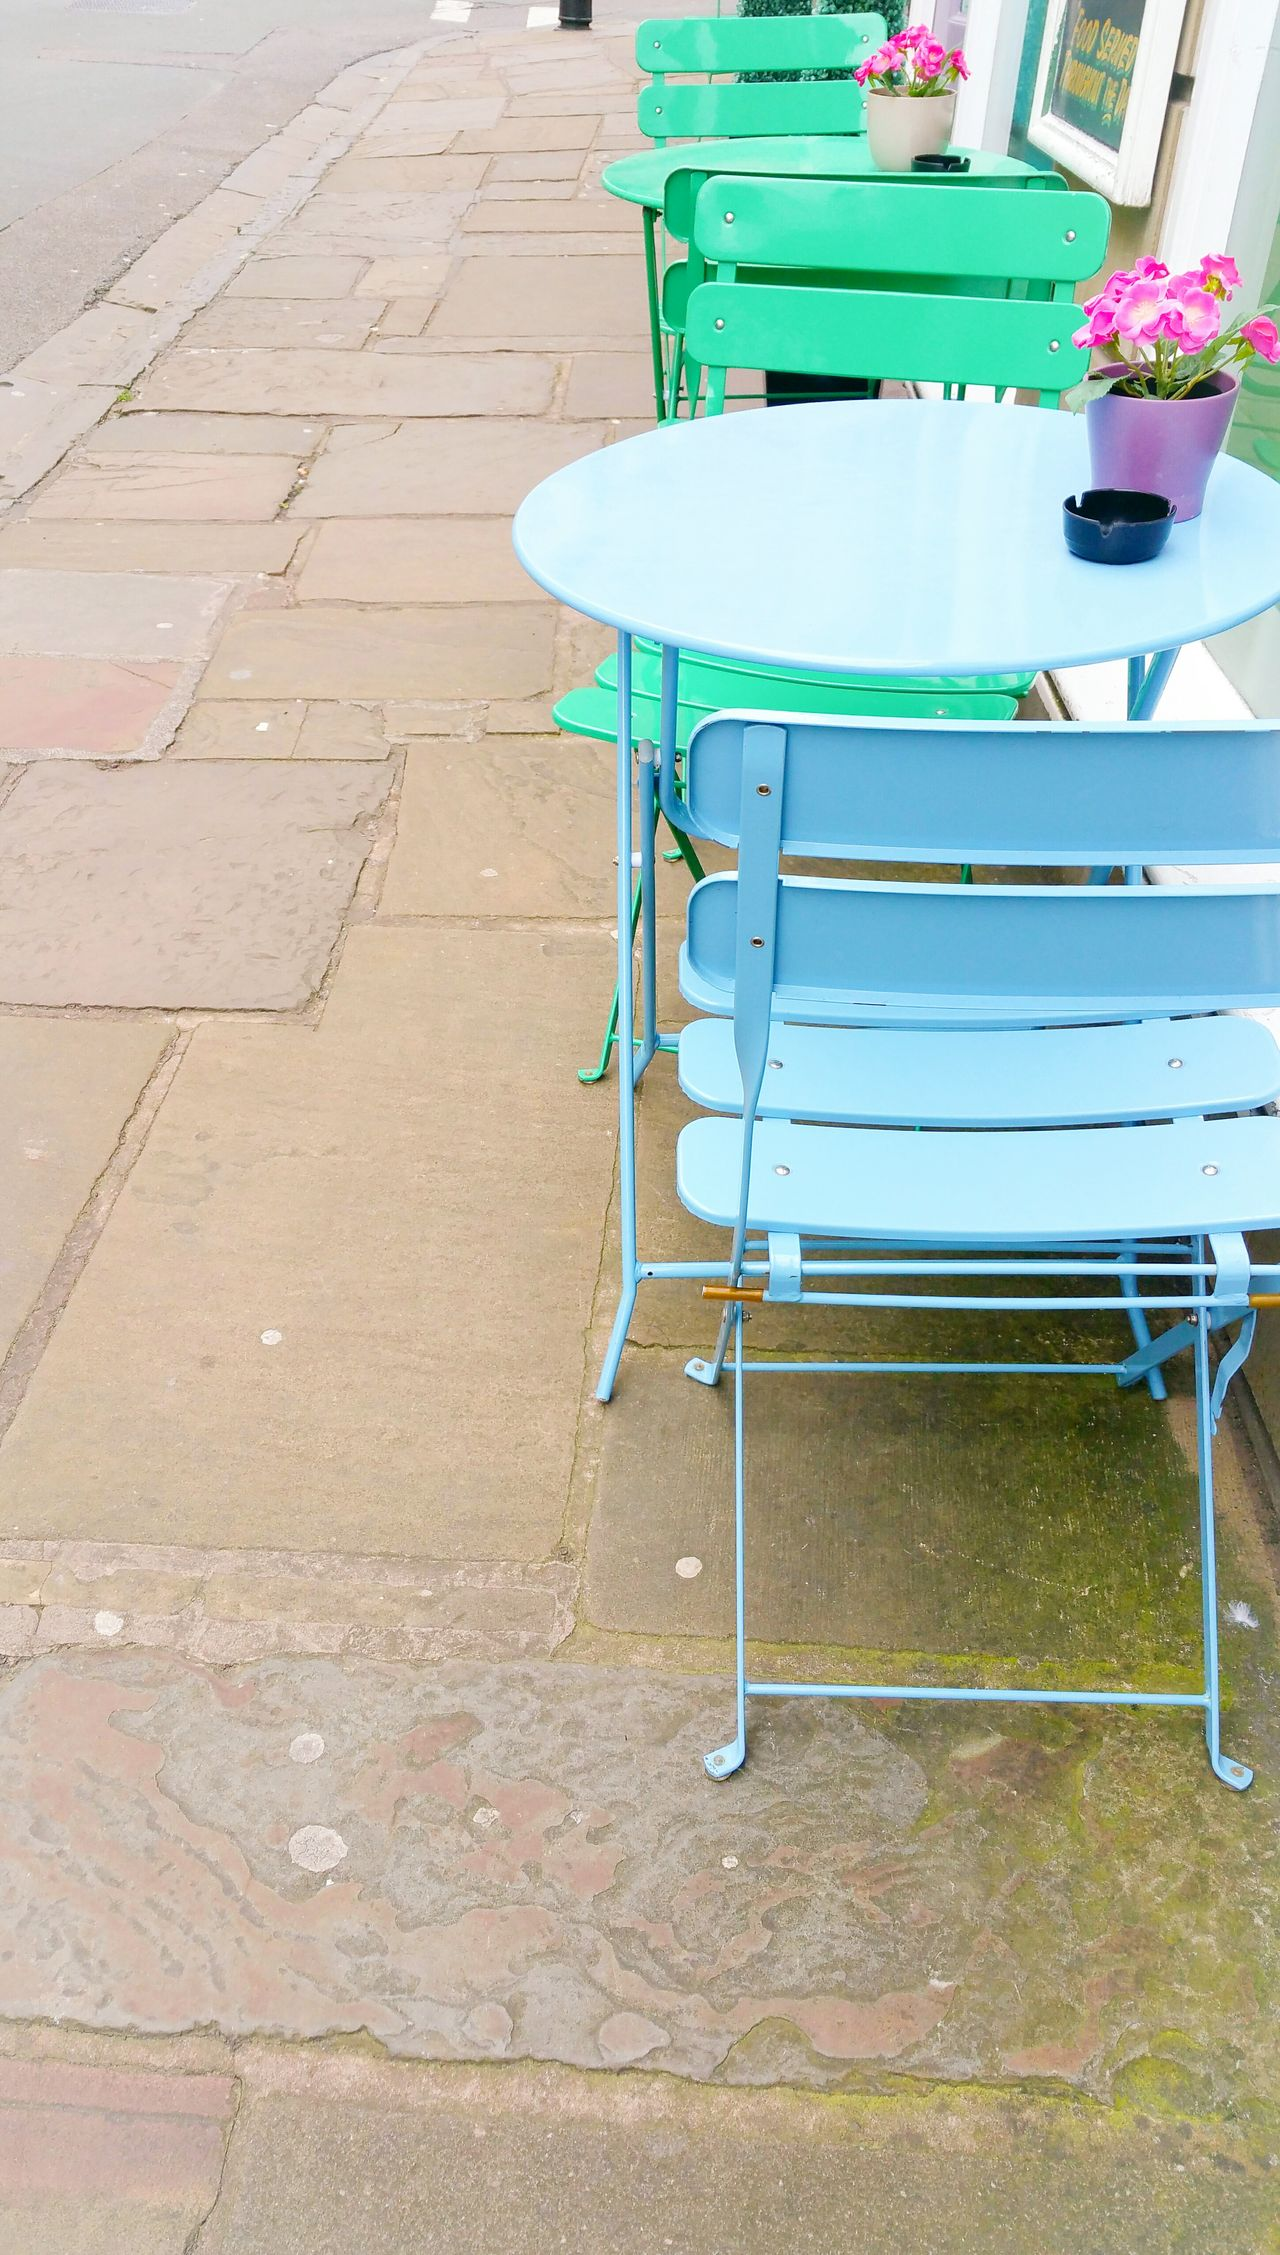 Green and Blue Chairs No People Outdoors Day Street Cafe Metal Pink Flowers Flowerpots Britain Pavement Sidewalk